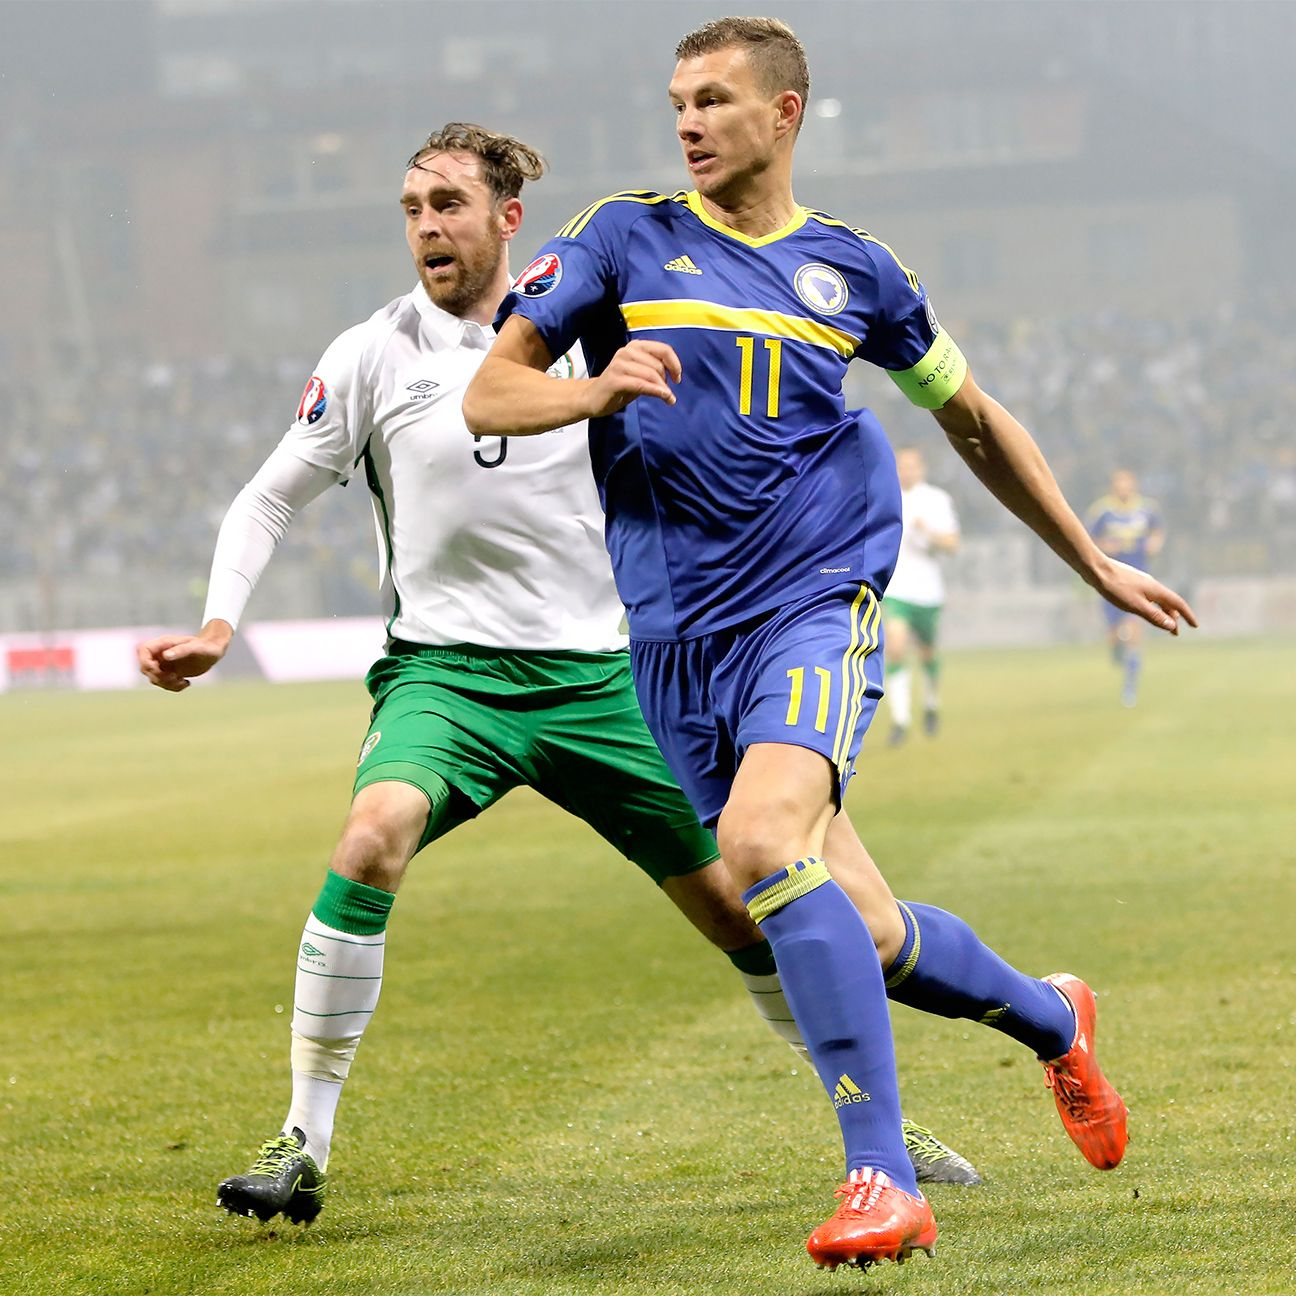 Bosnia-Herzegovina will be looking to build off of Edin Dzeko's late equaliser from the first leg when they travel to Ireland for Monday's return leg.